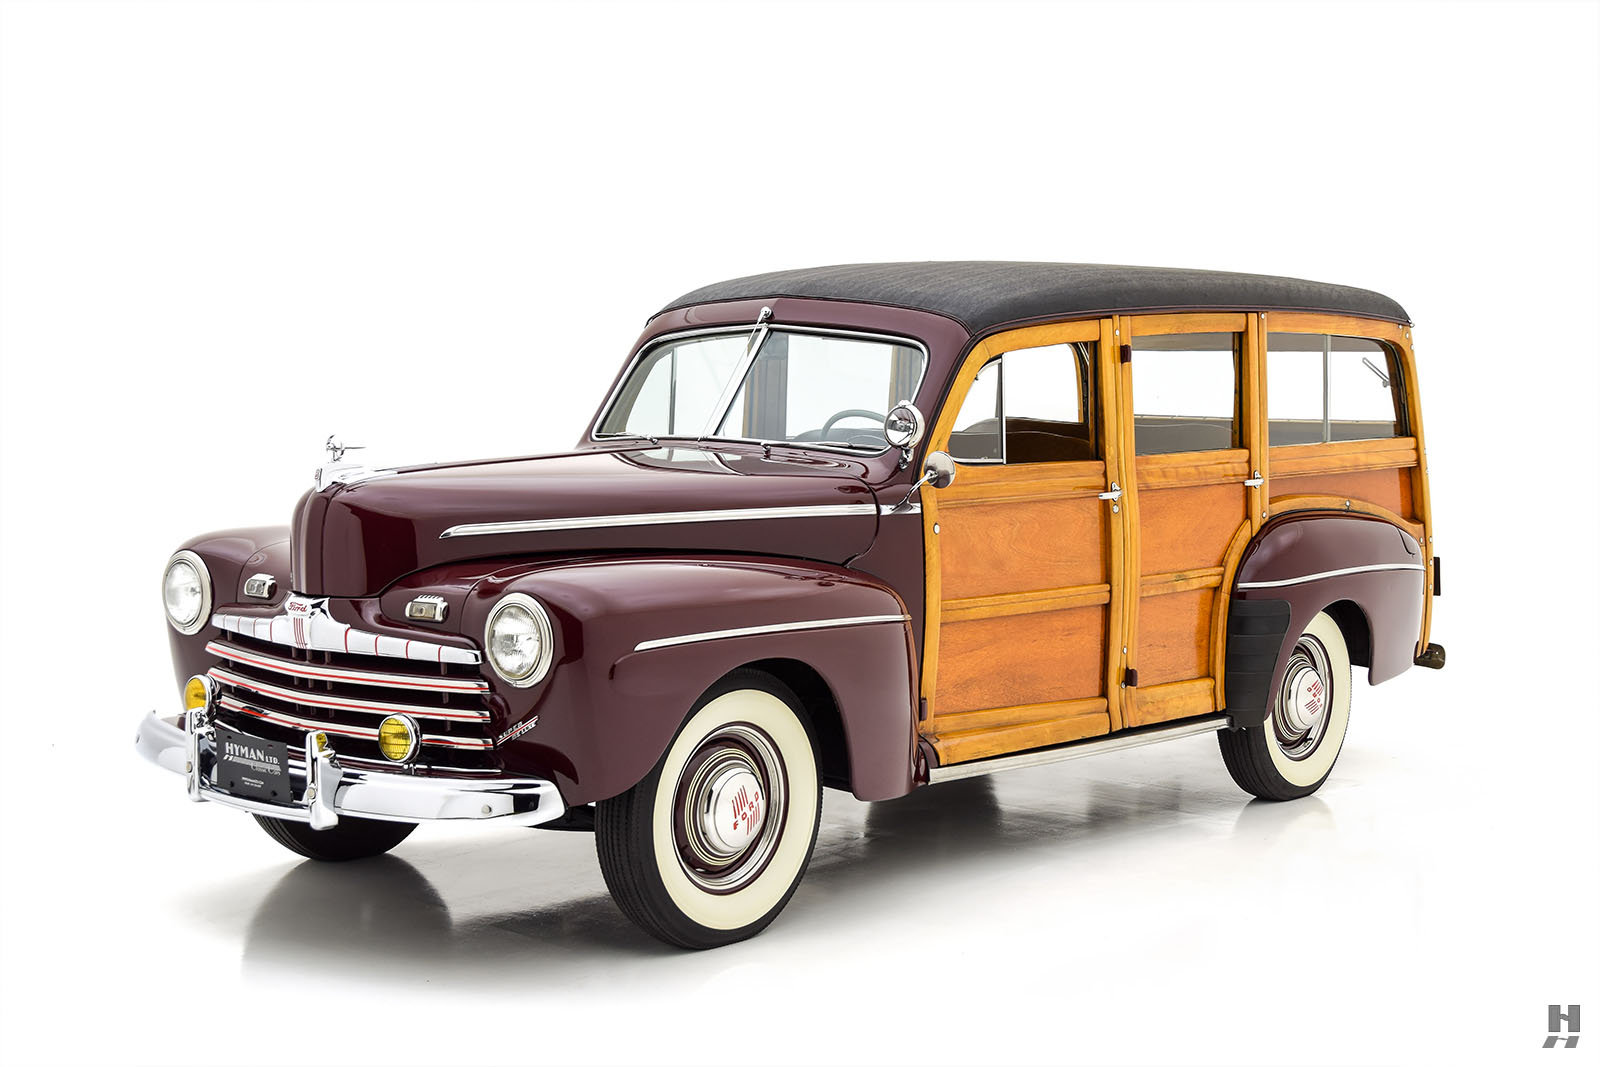 1946 FORD SUPER DELUXE STATION WAGON For Sale (picture 1 of 6)